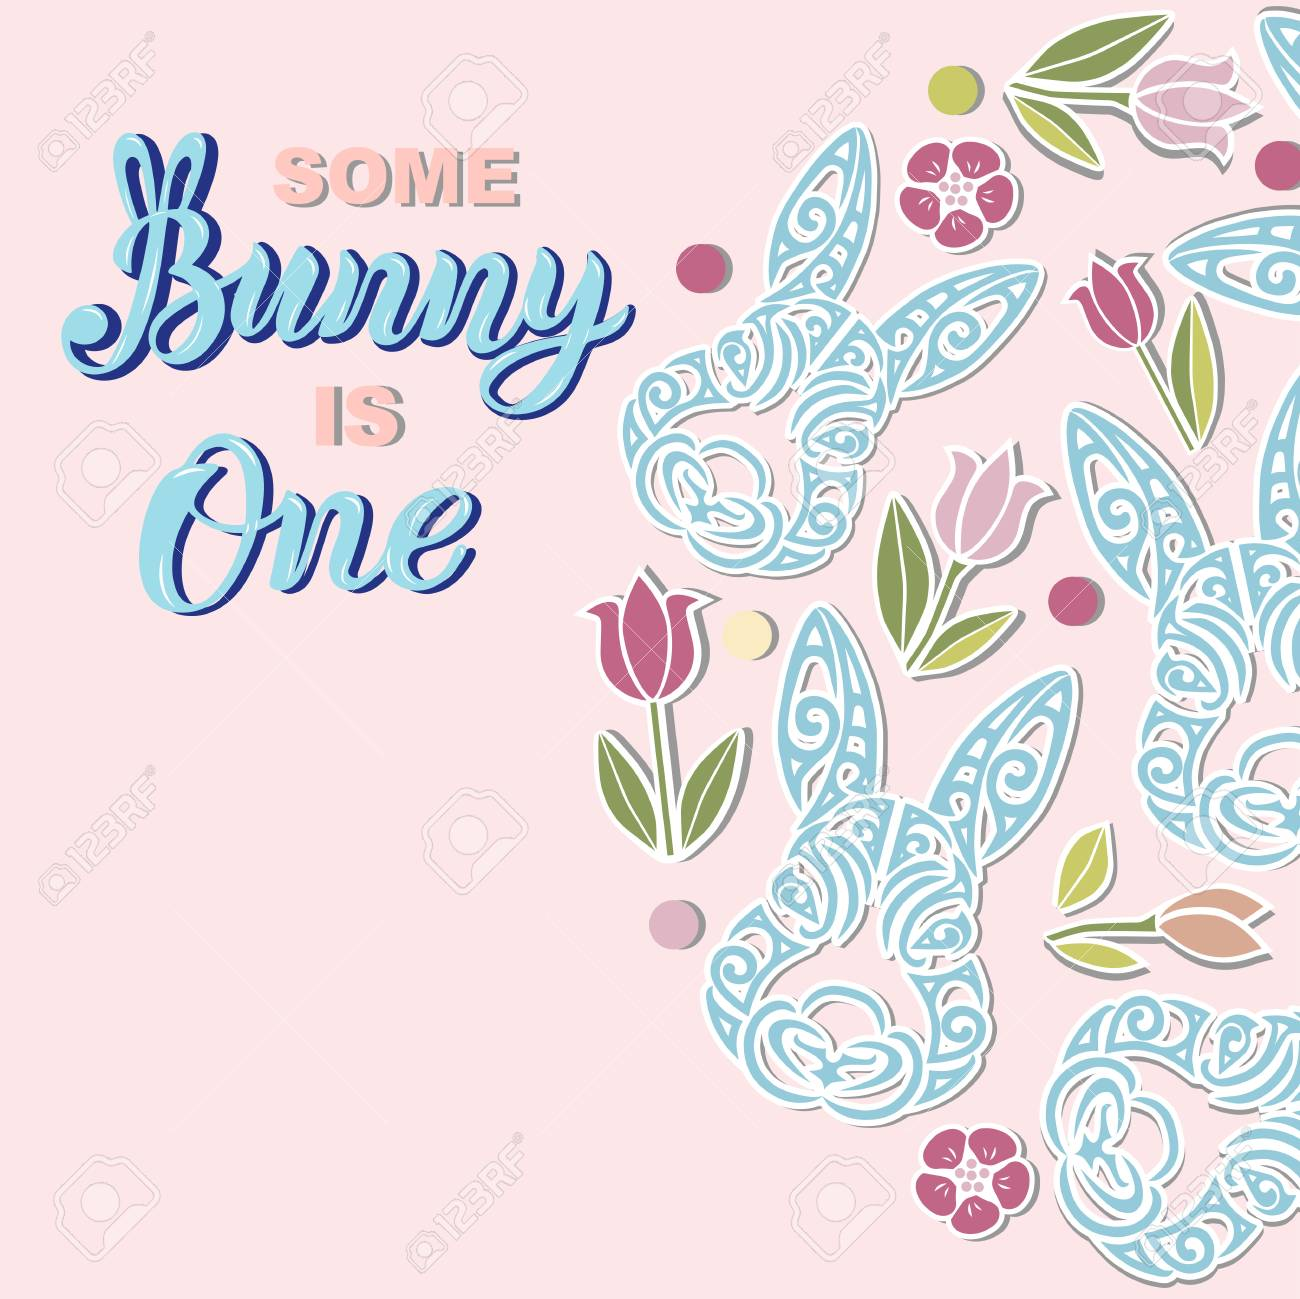 some bunny is one text is on the background with rabbits handwritten